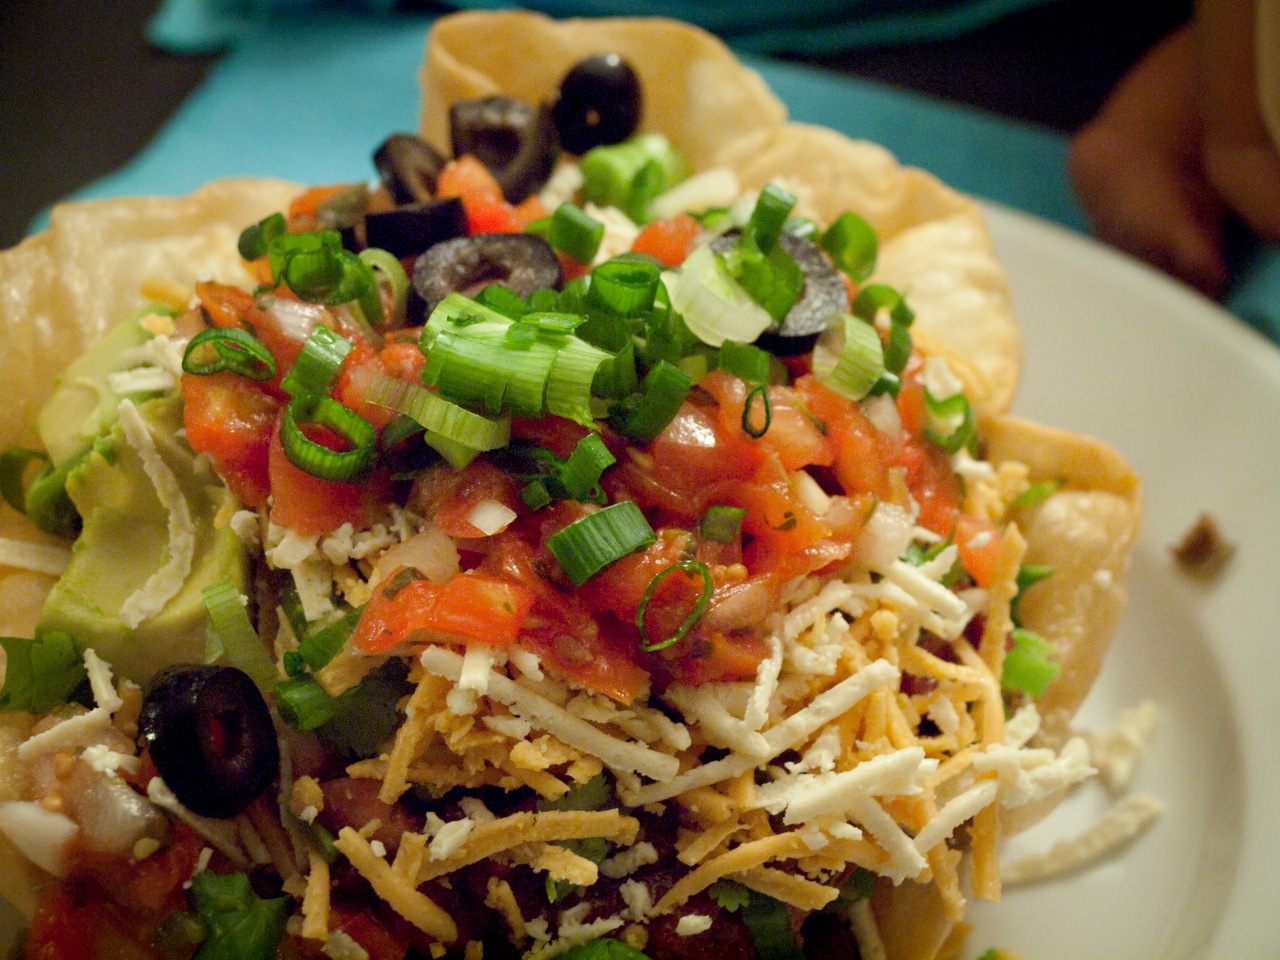 Fried Taco Salad Bowl Taco salad: guesting and